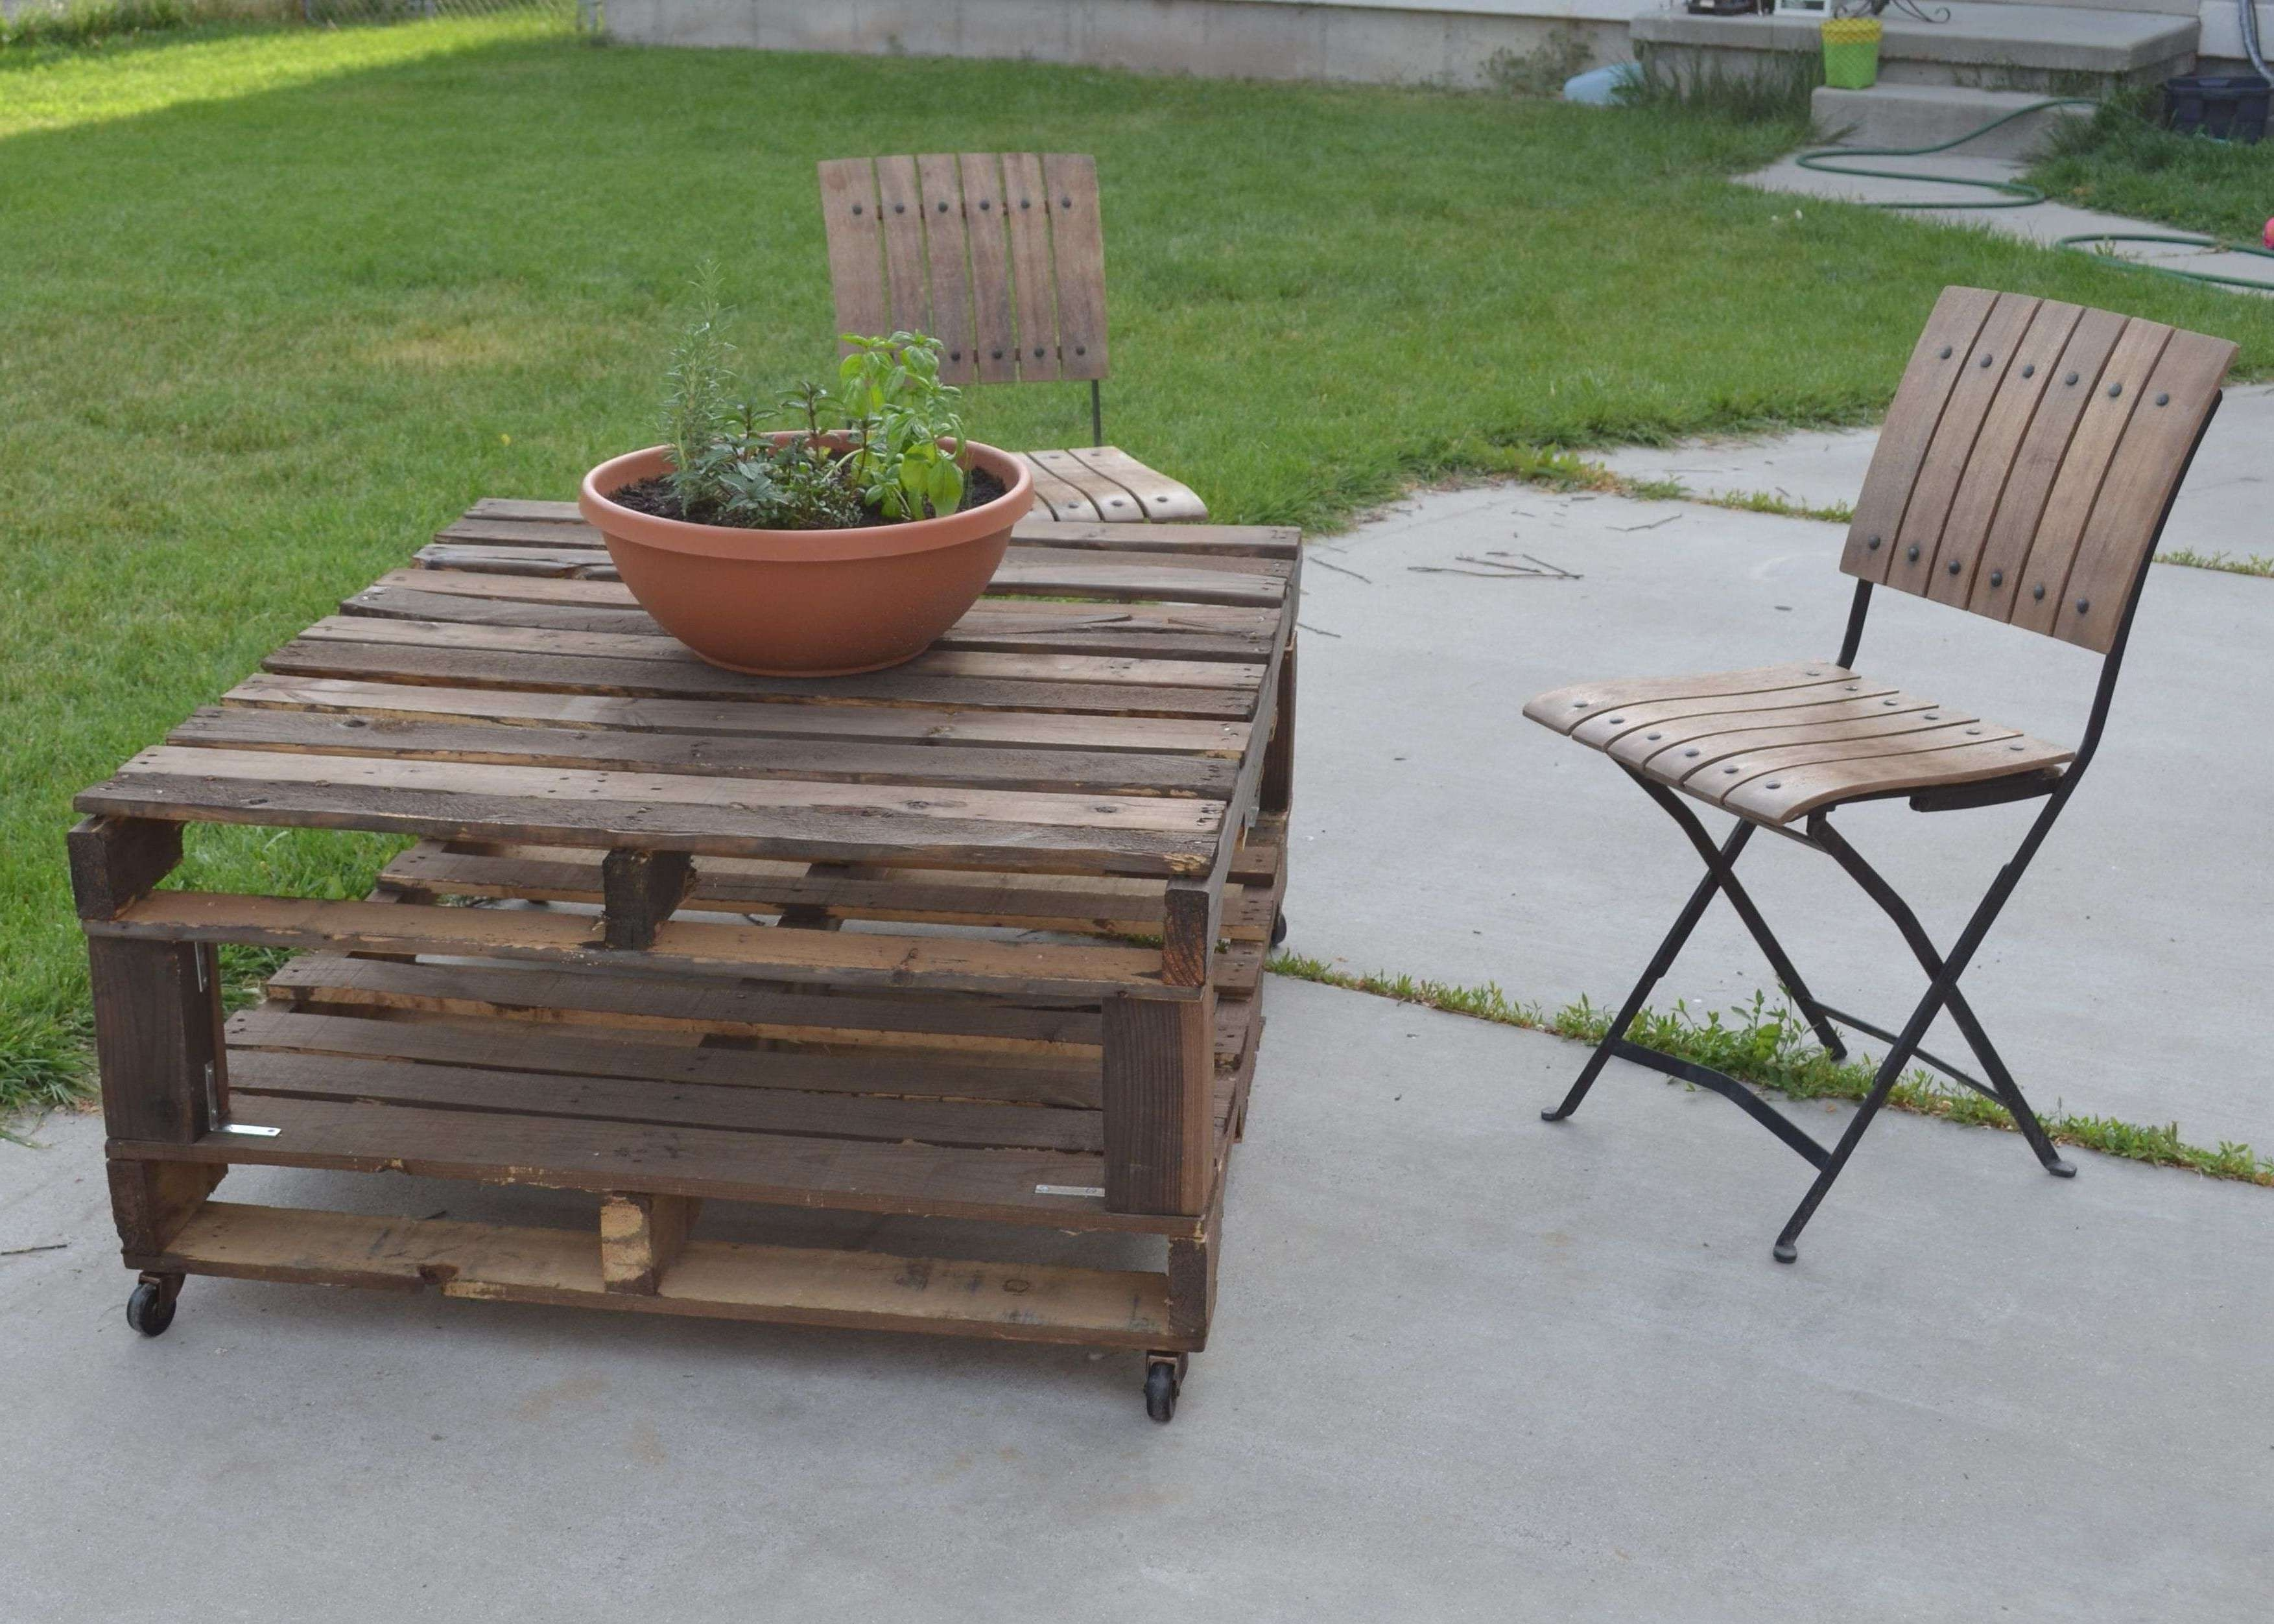 Famous Wooden Garden Coffee Tables Throughout Diy Outdoor Wood Coffee Table Using Reclaimed Wood And Wheels With (View 7 of 20)